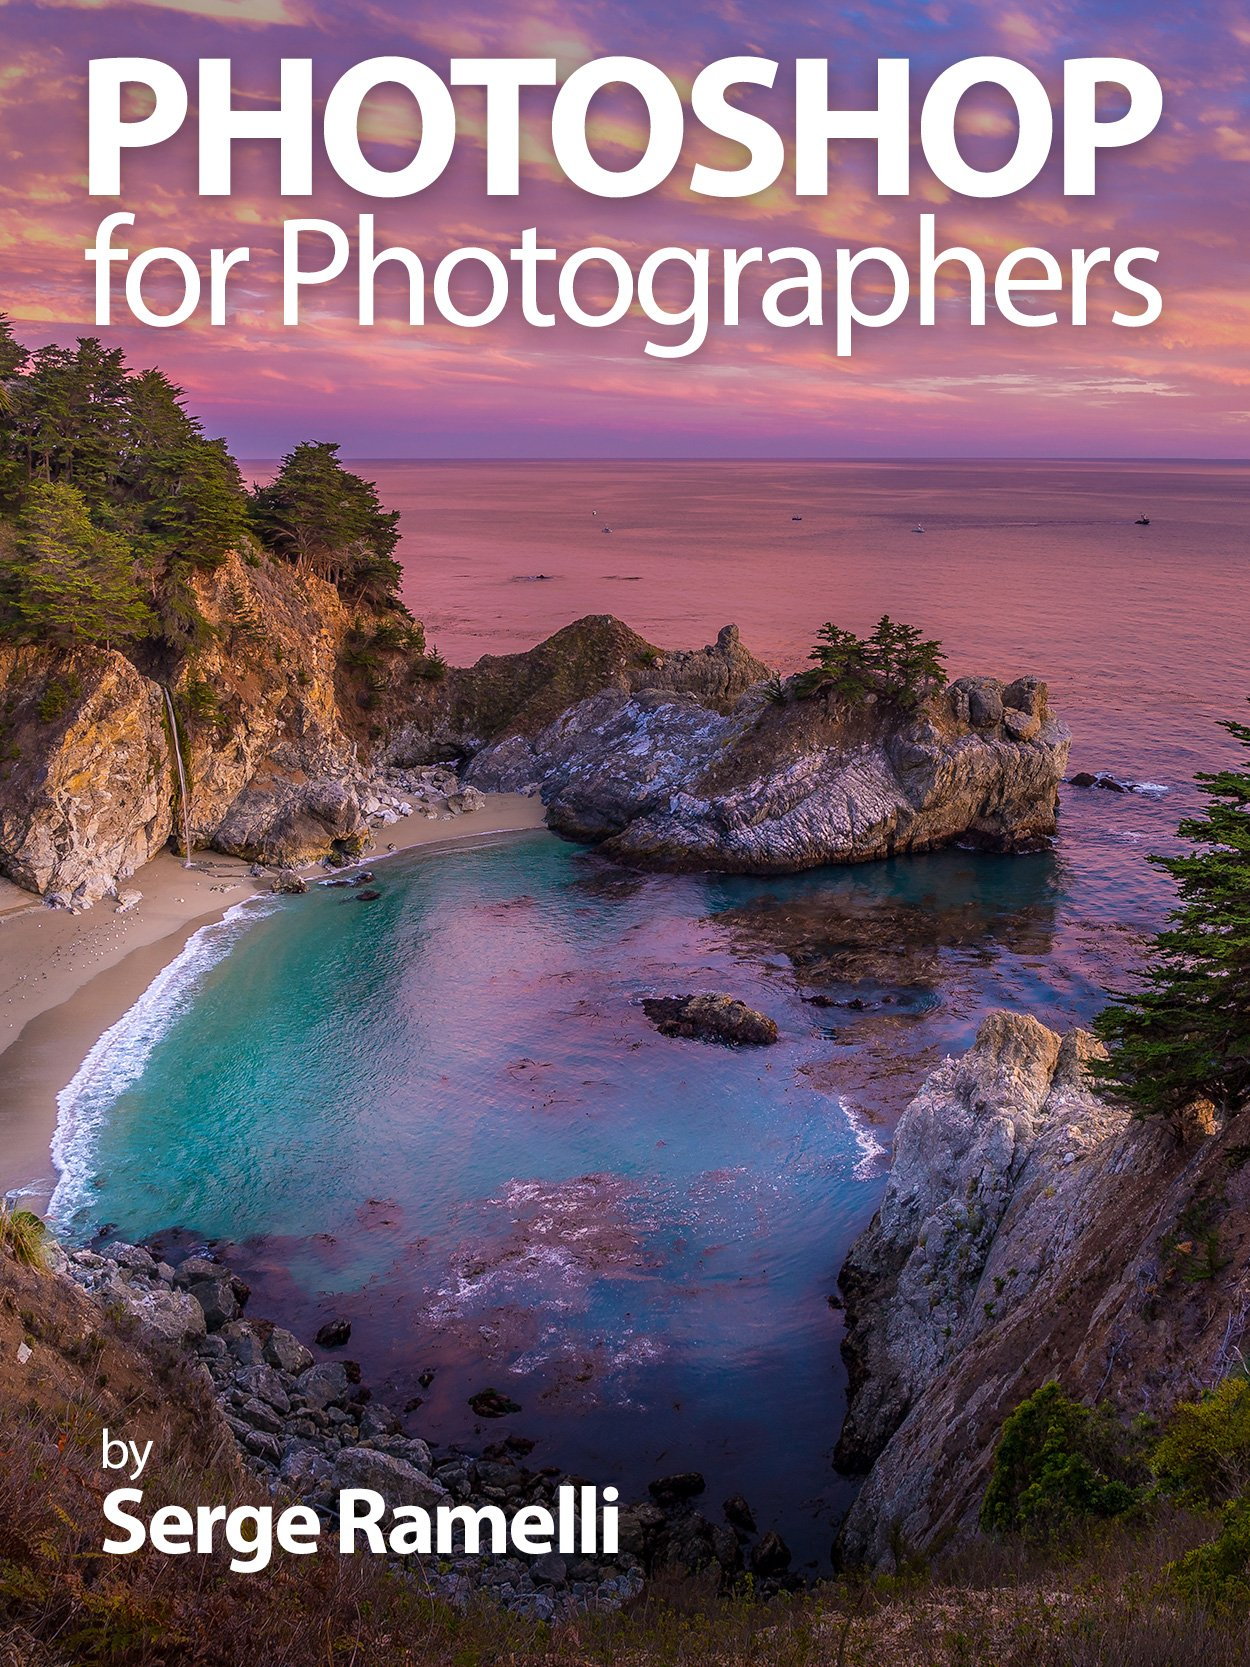 Photoshop For Photographers  Complete Photoshop Training For Photographers  English Edition